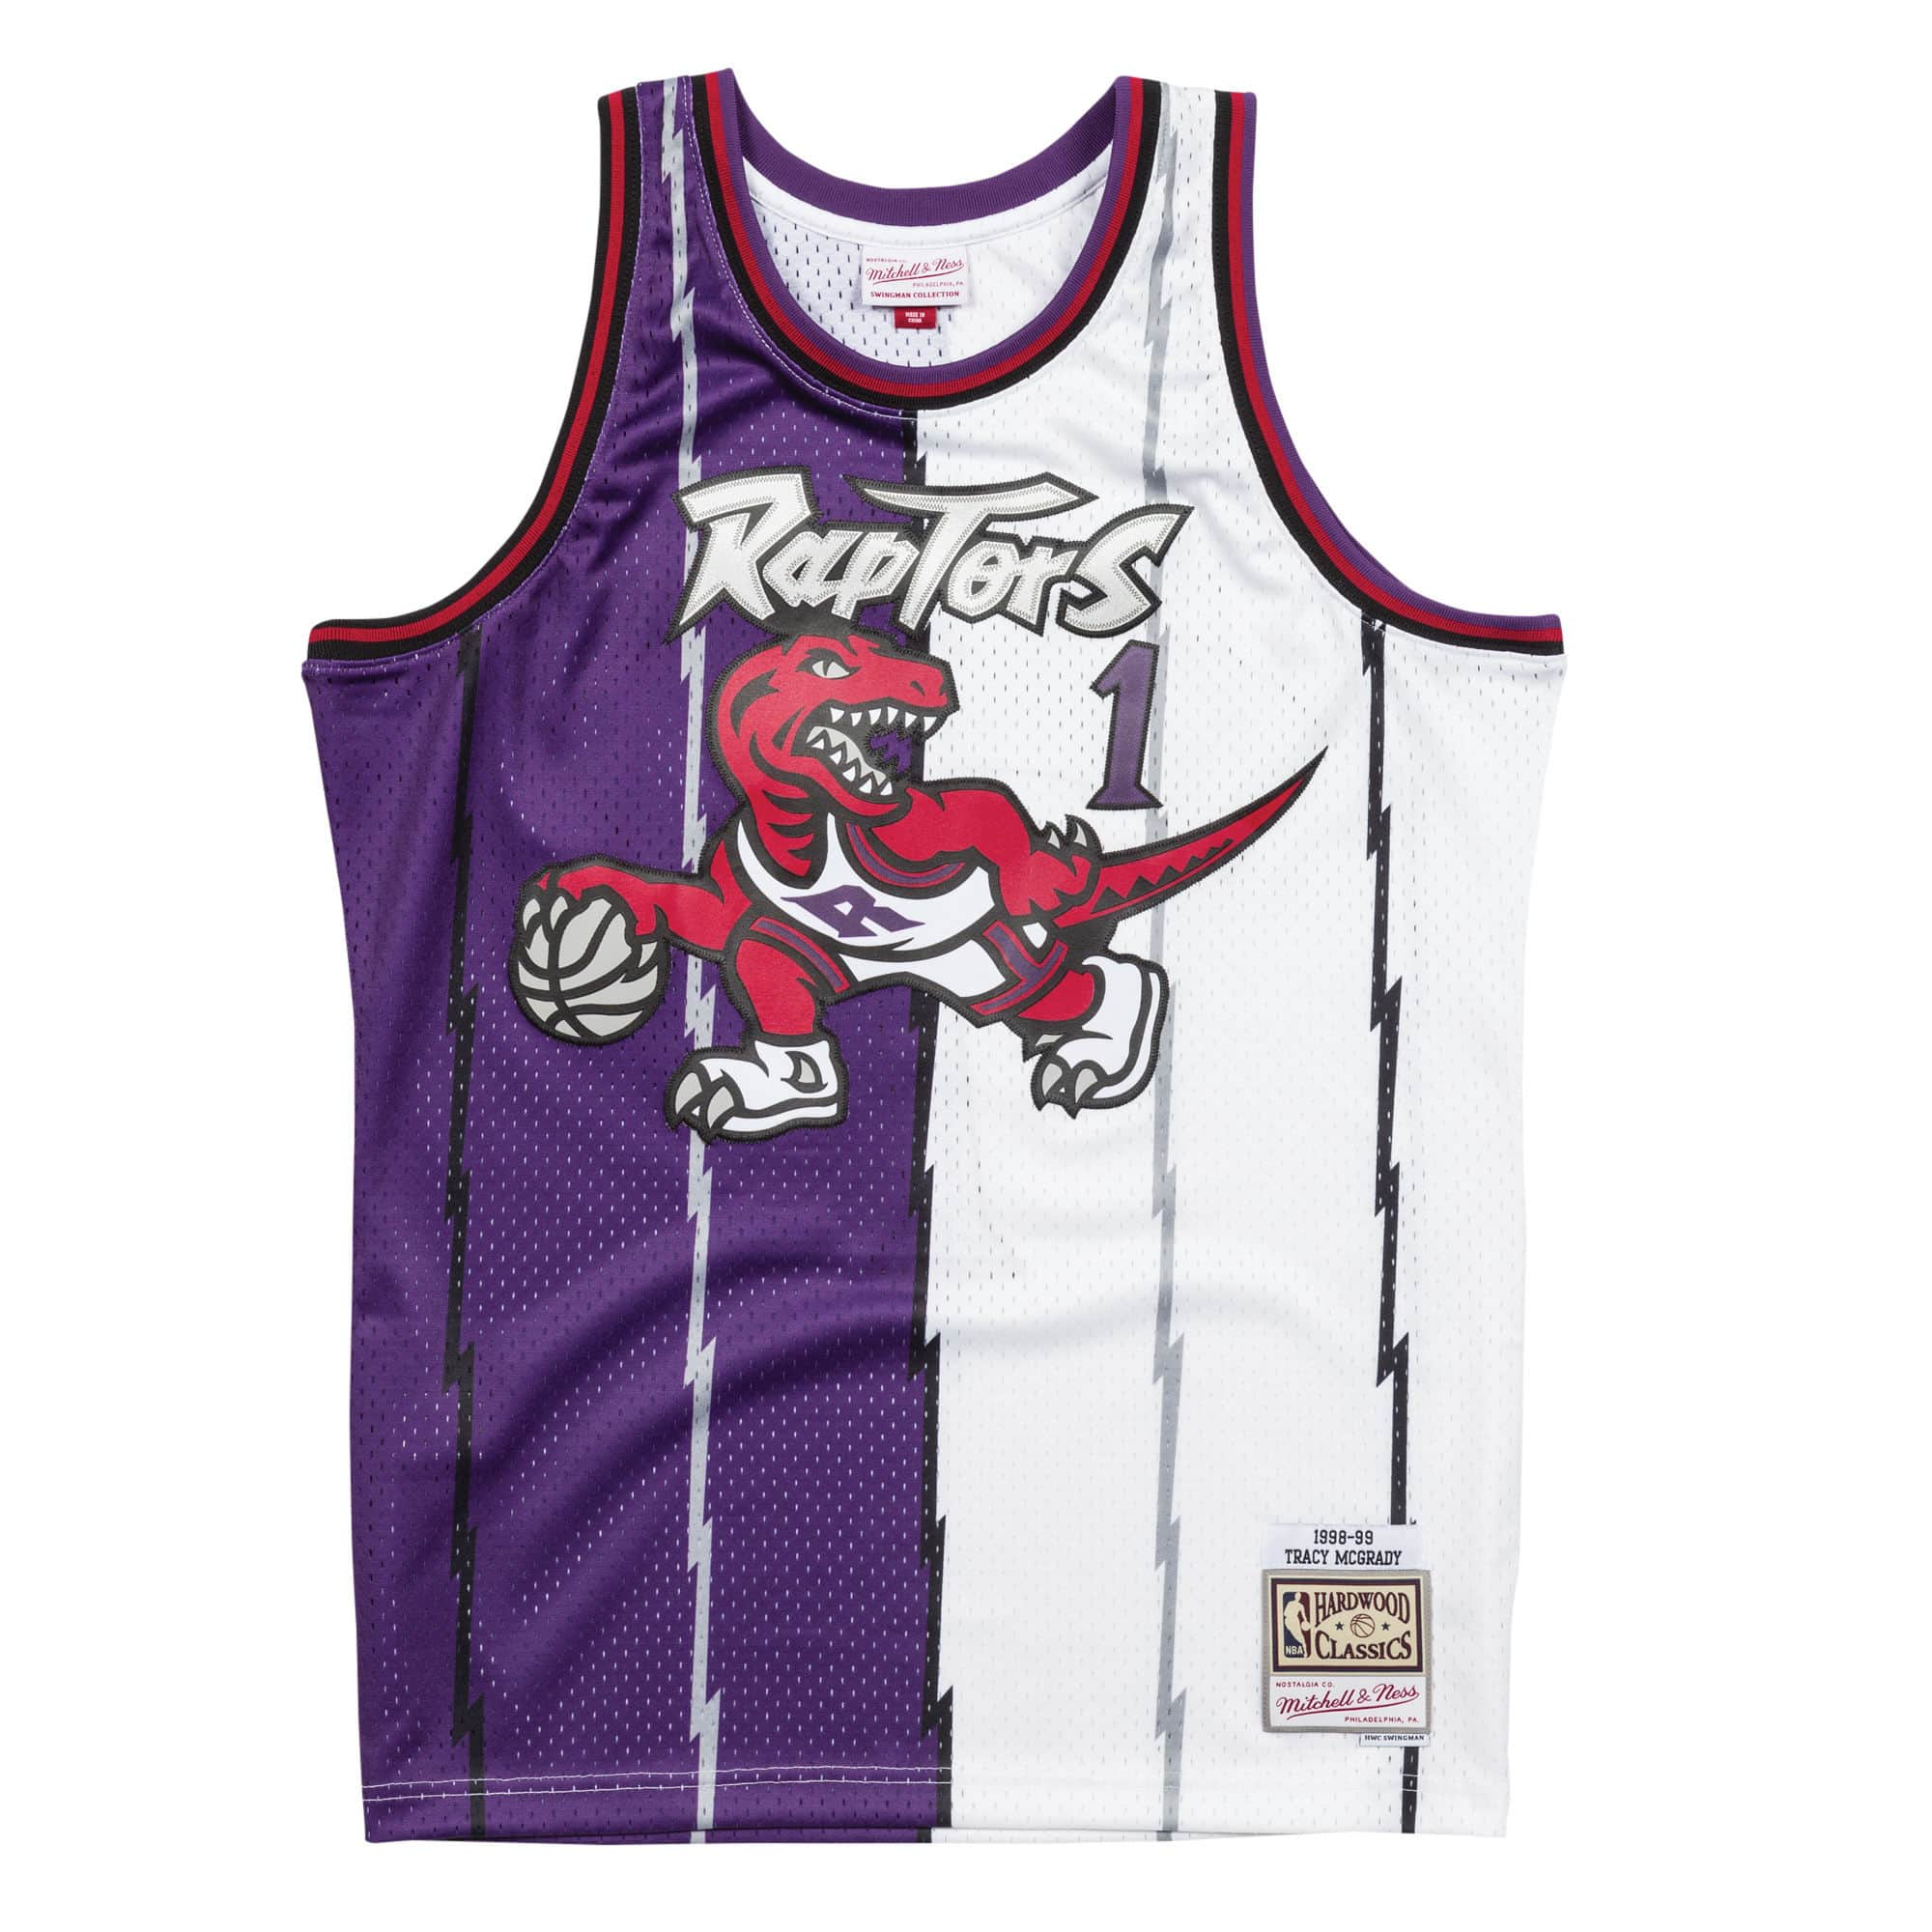 detailed look 41c79 056ef Mitchell & Ness releases split jersey collection honoring ...